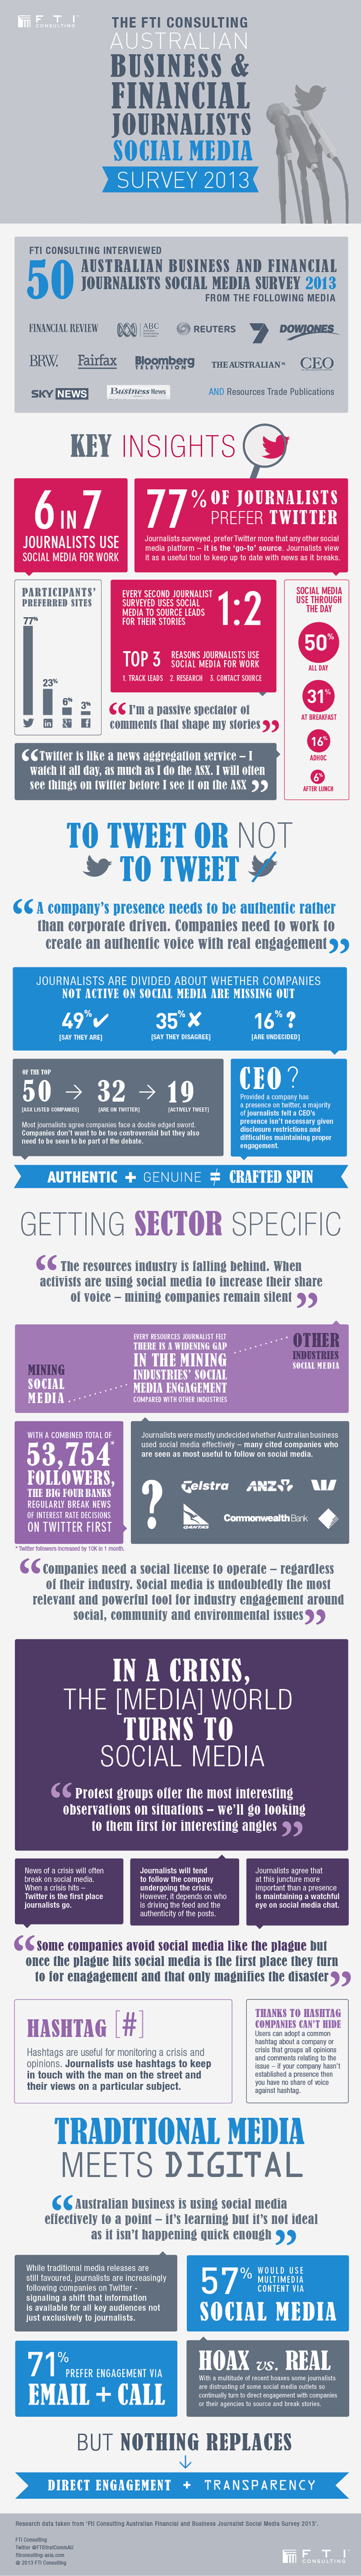 Australian Business and Financial Journalists Social Media Survey 2013